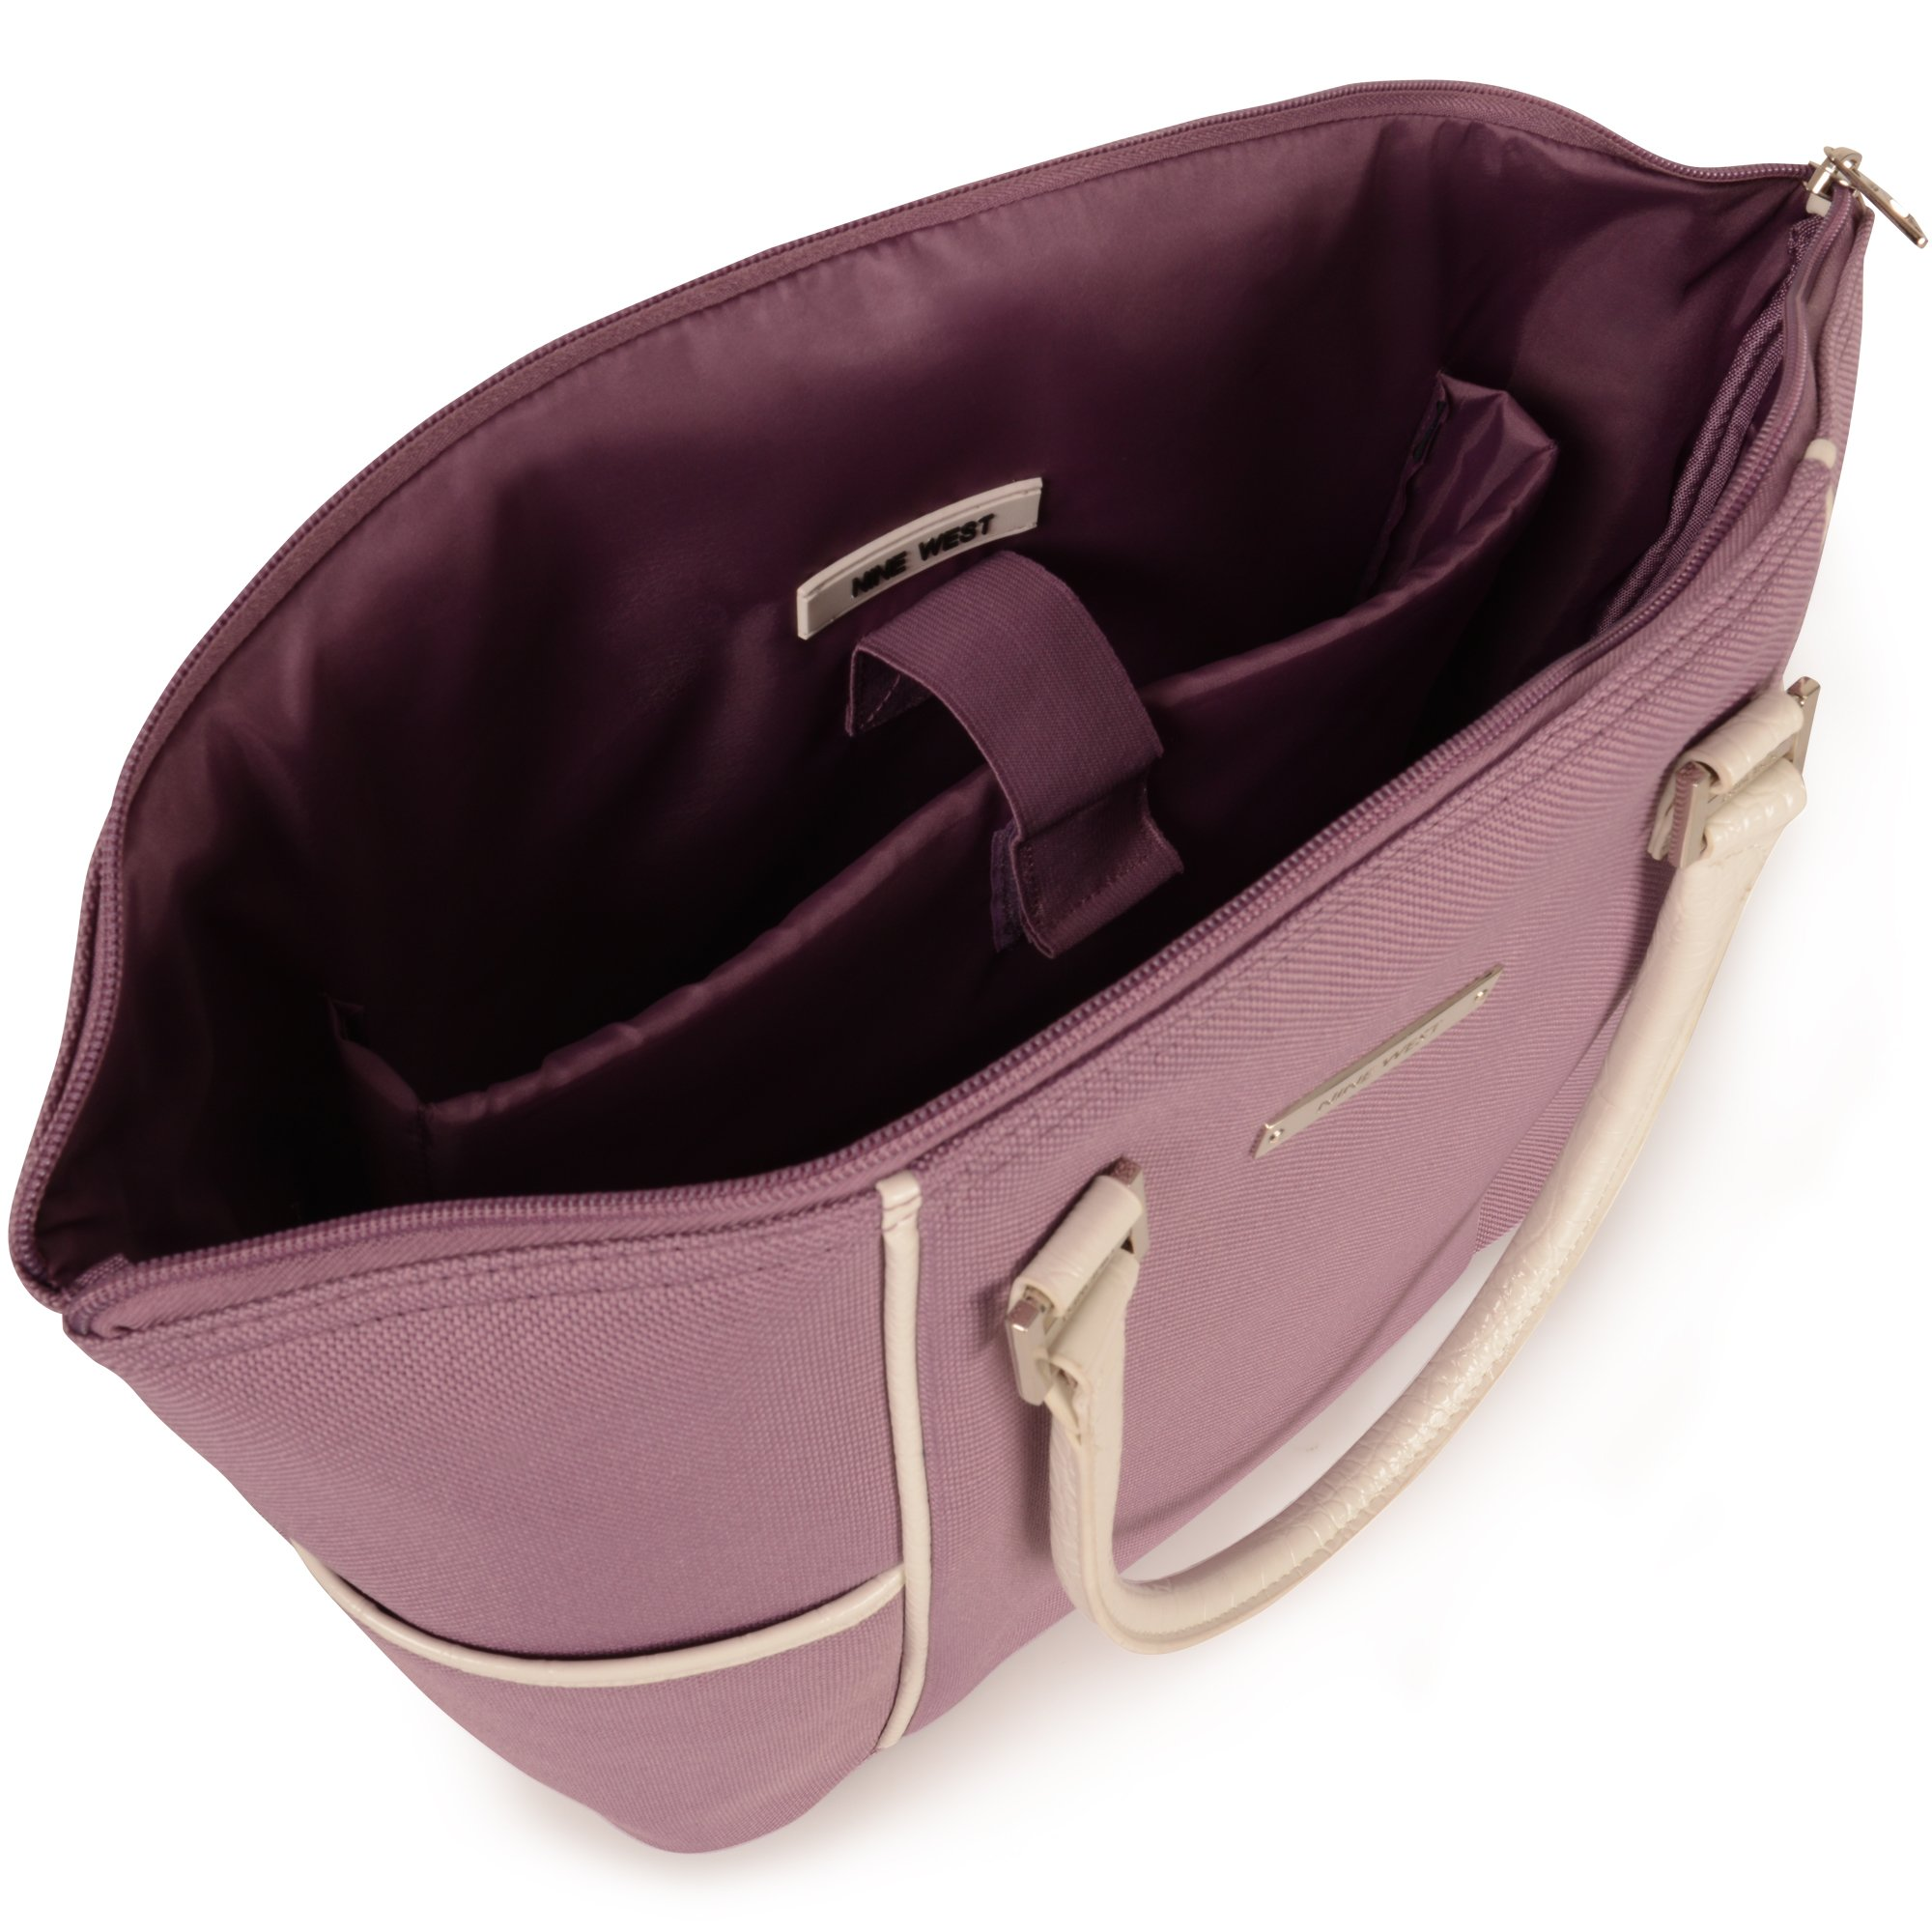 Ninewest Rendezvous 14 Inch Tote, Lilac/White, One Size